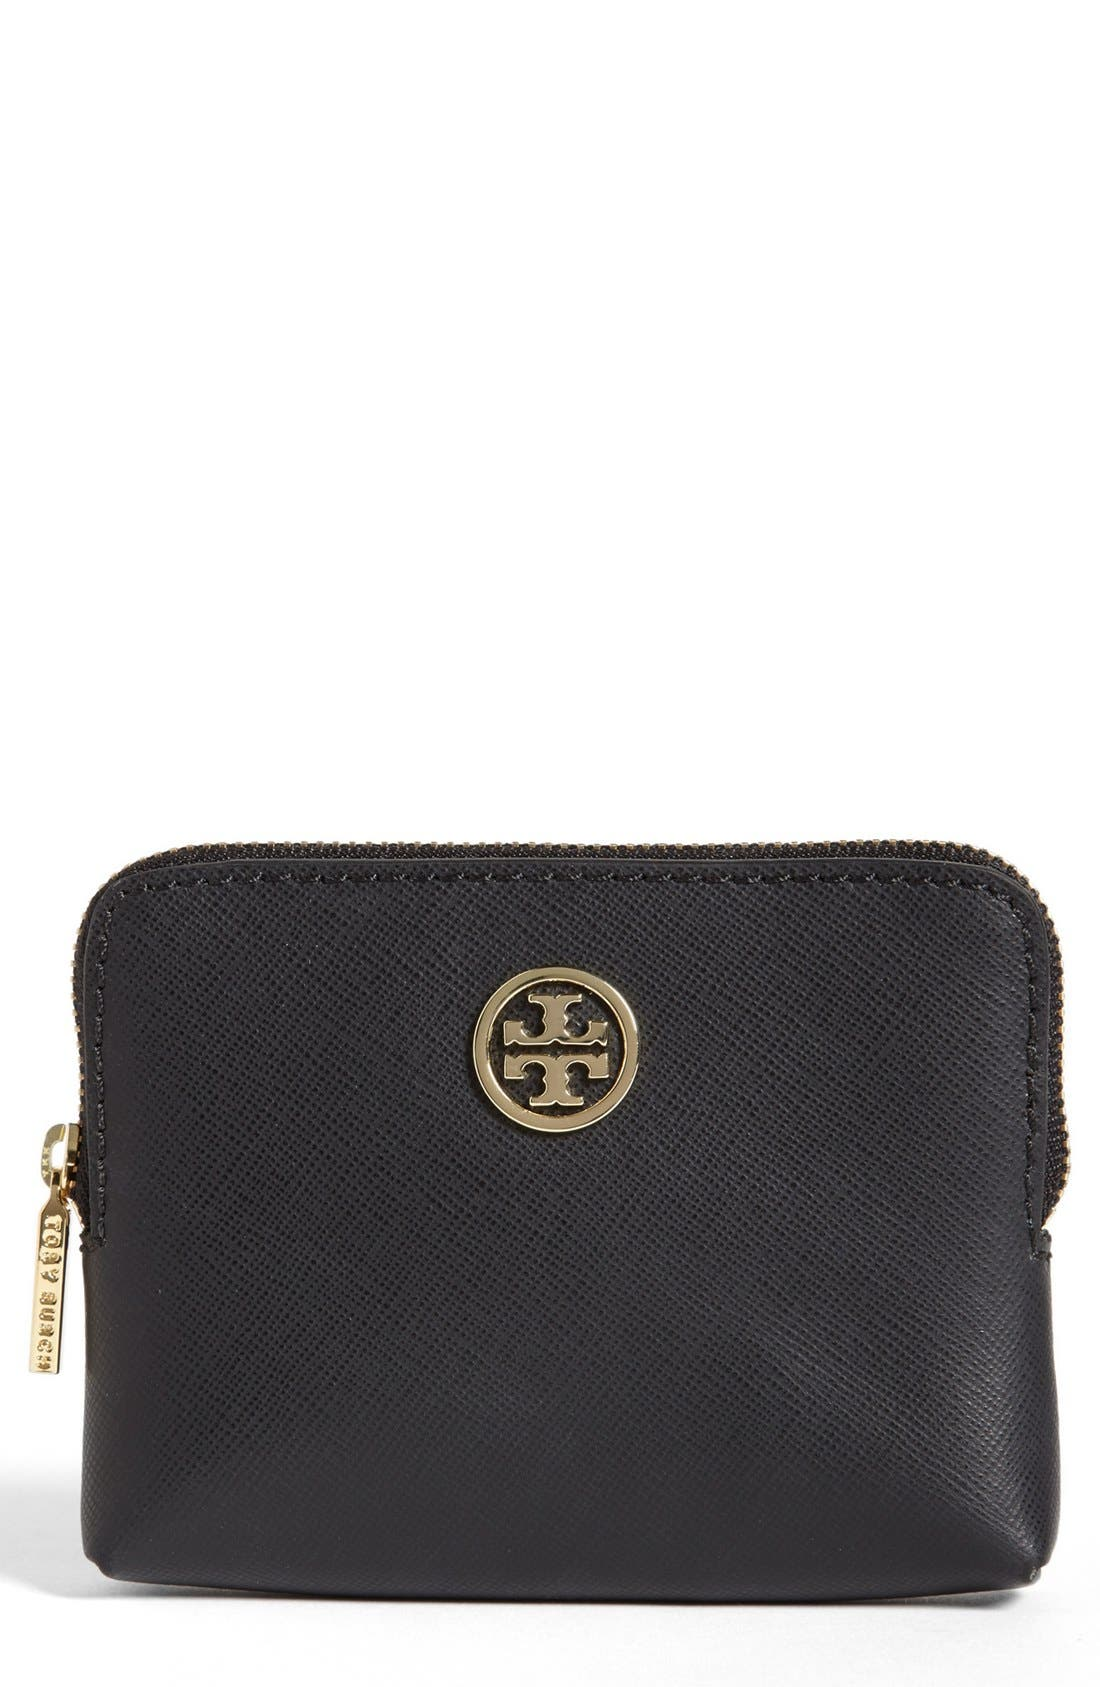 Alternate Image 1 Selected - Tory Burch 'Robinson' Saffiano Leather Coin Case